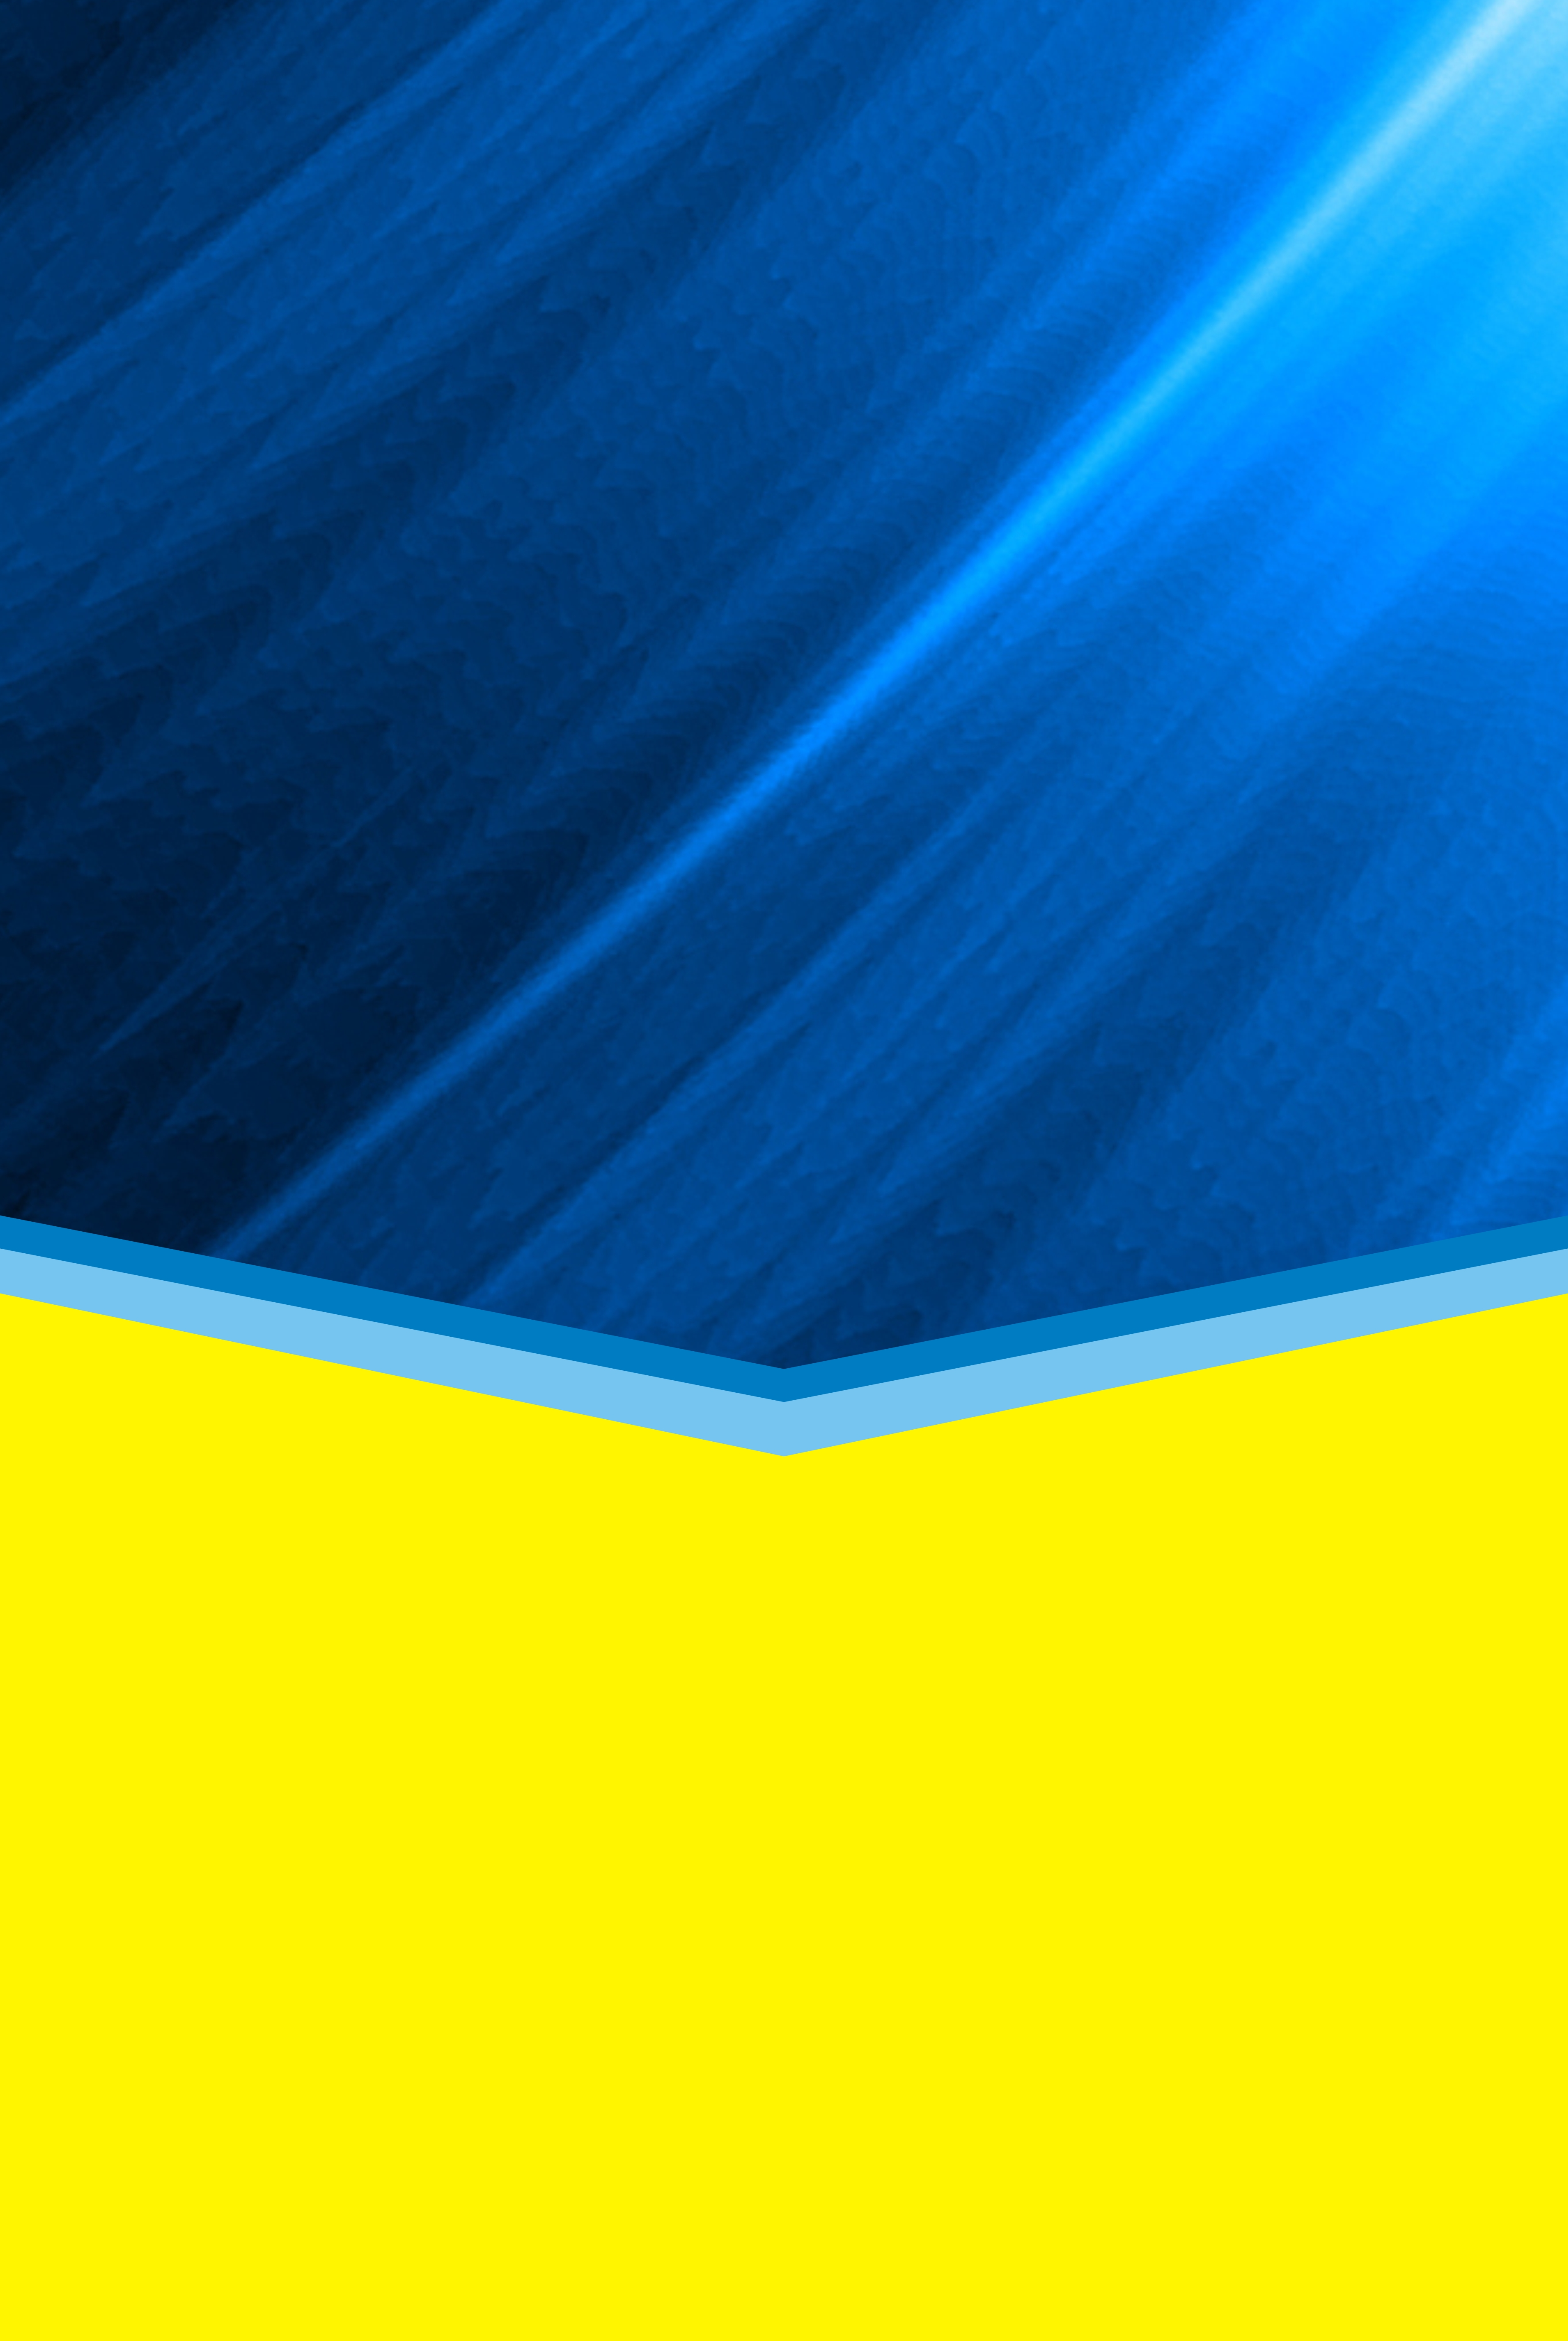 business blue luminescent yellow background business blue light background image for free. Black Bedroom Furniture Sets. Home Design Ideas